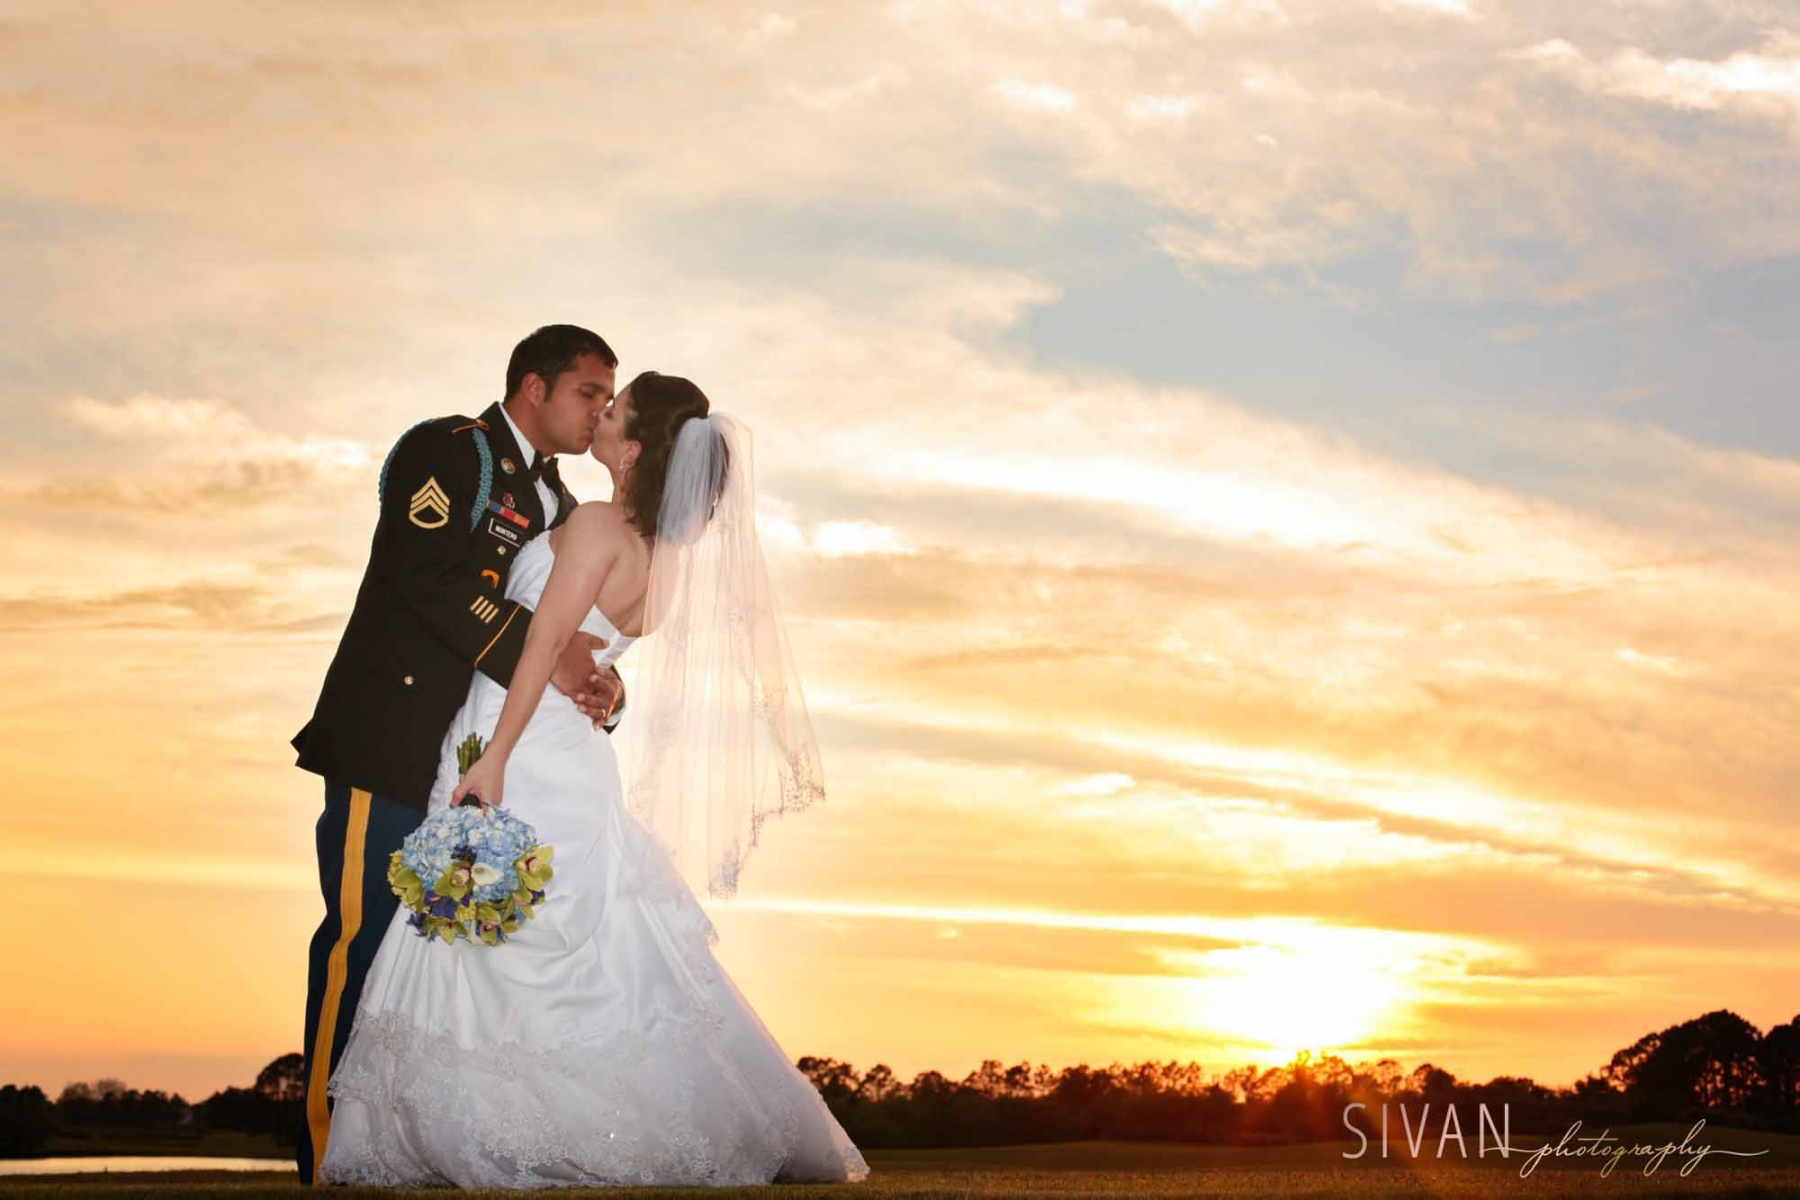 www.SivanPhotography.com